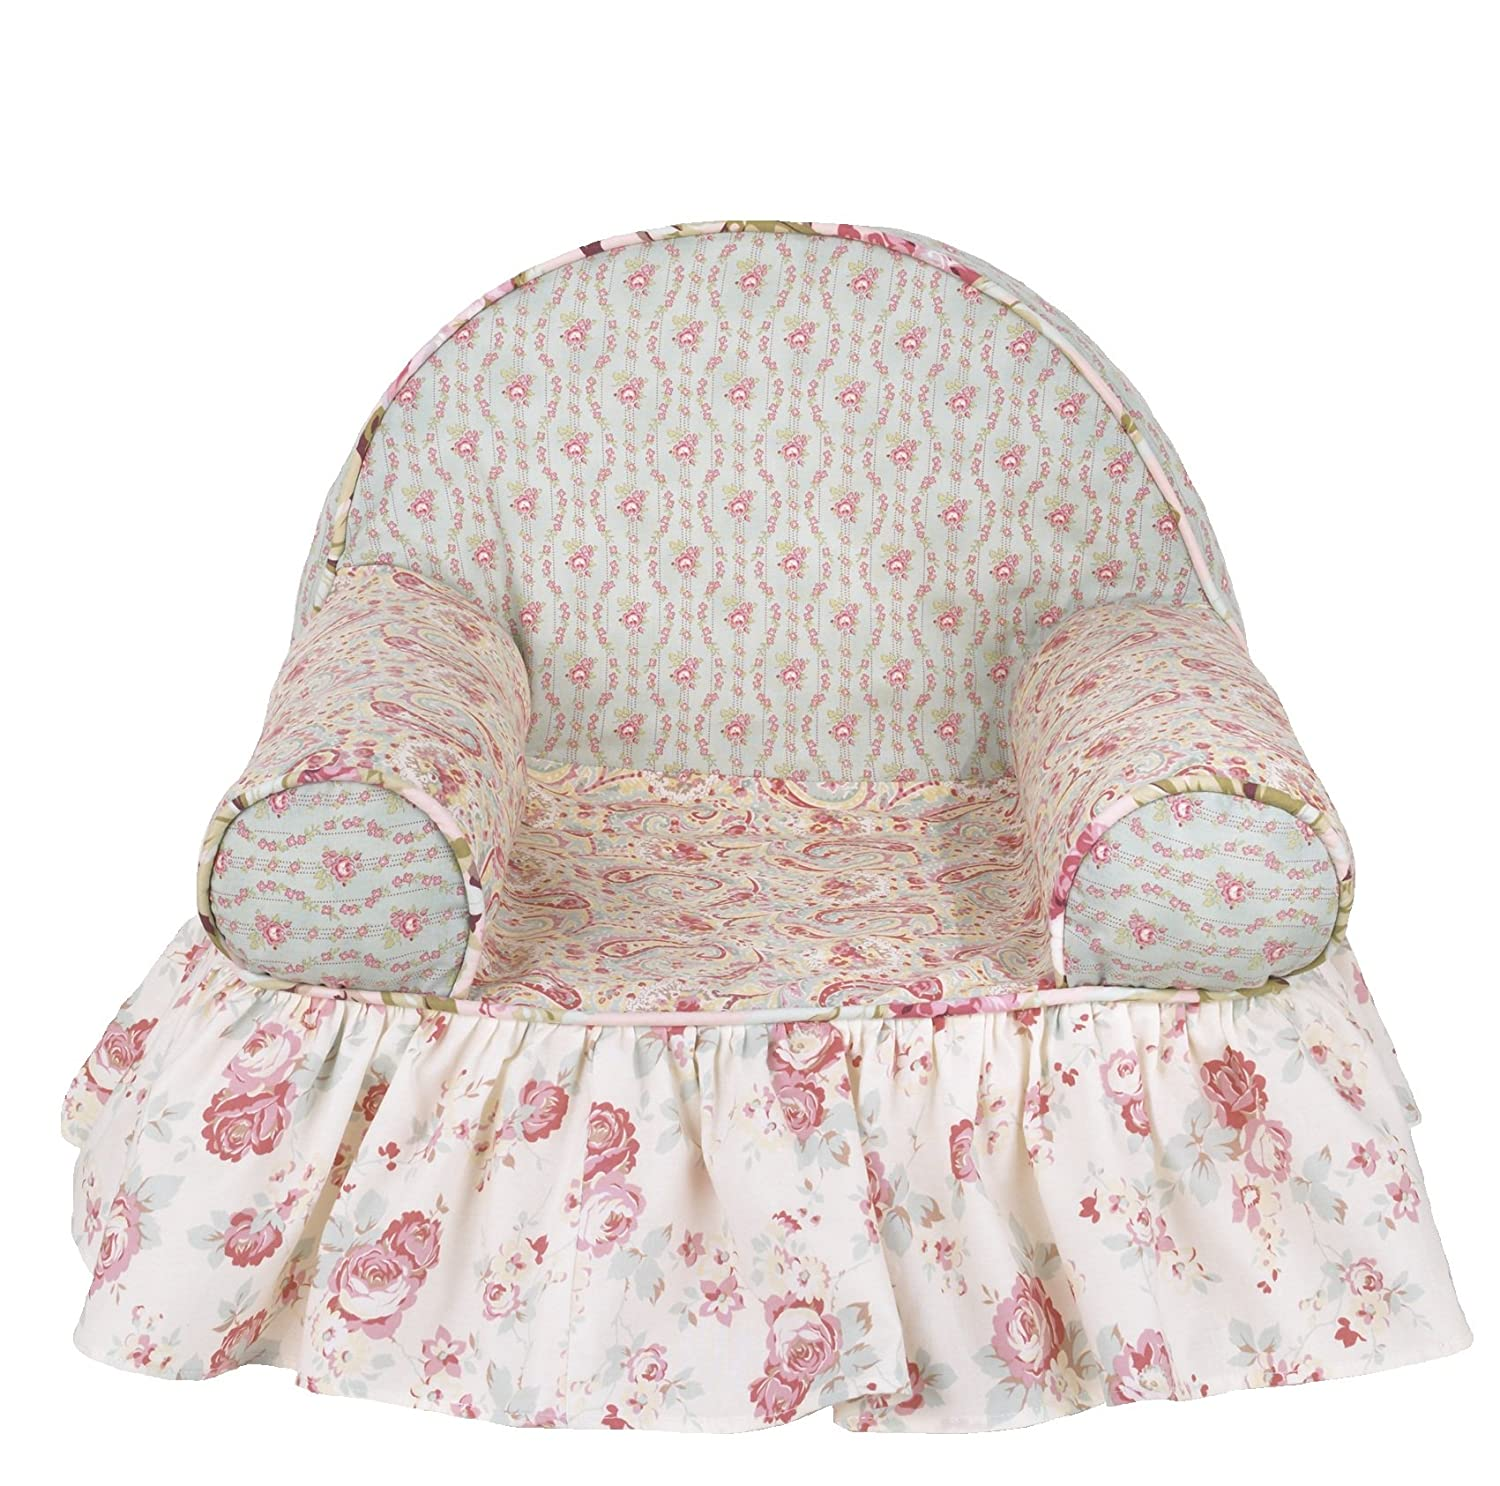 new styles a4fb3 6bb55 Cotton Tale Designs Baby's 1st Chair, Tea Party